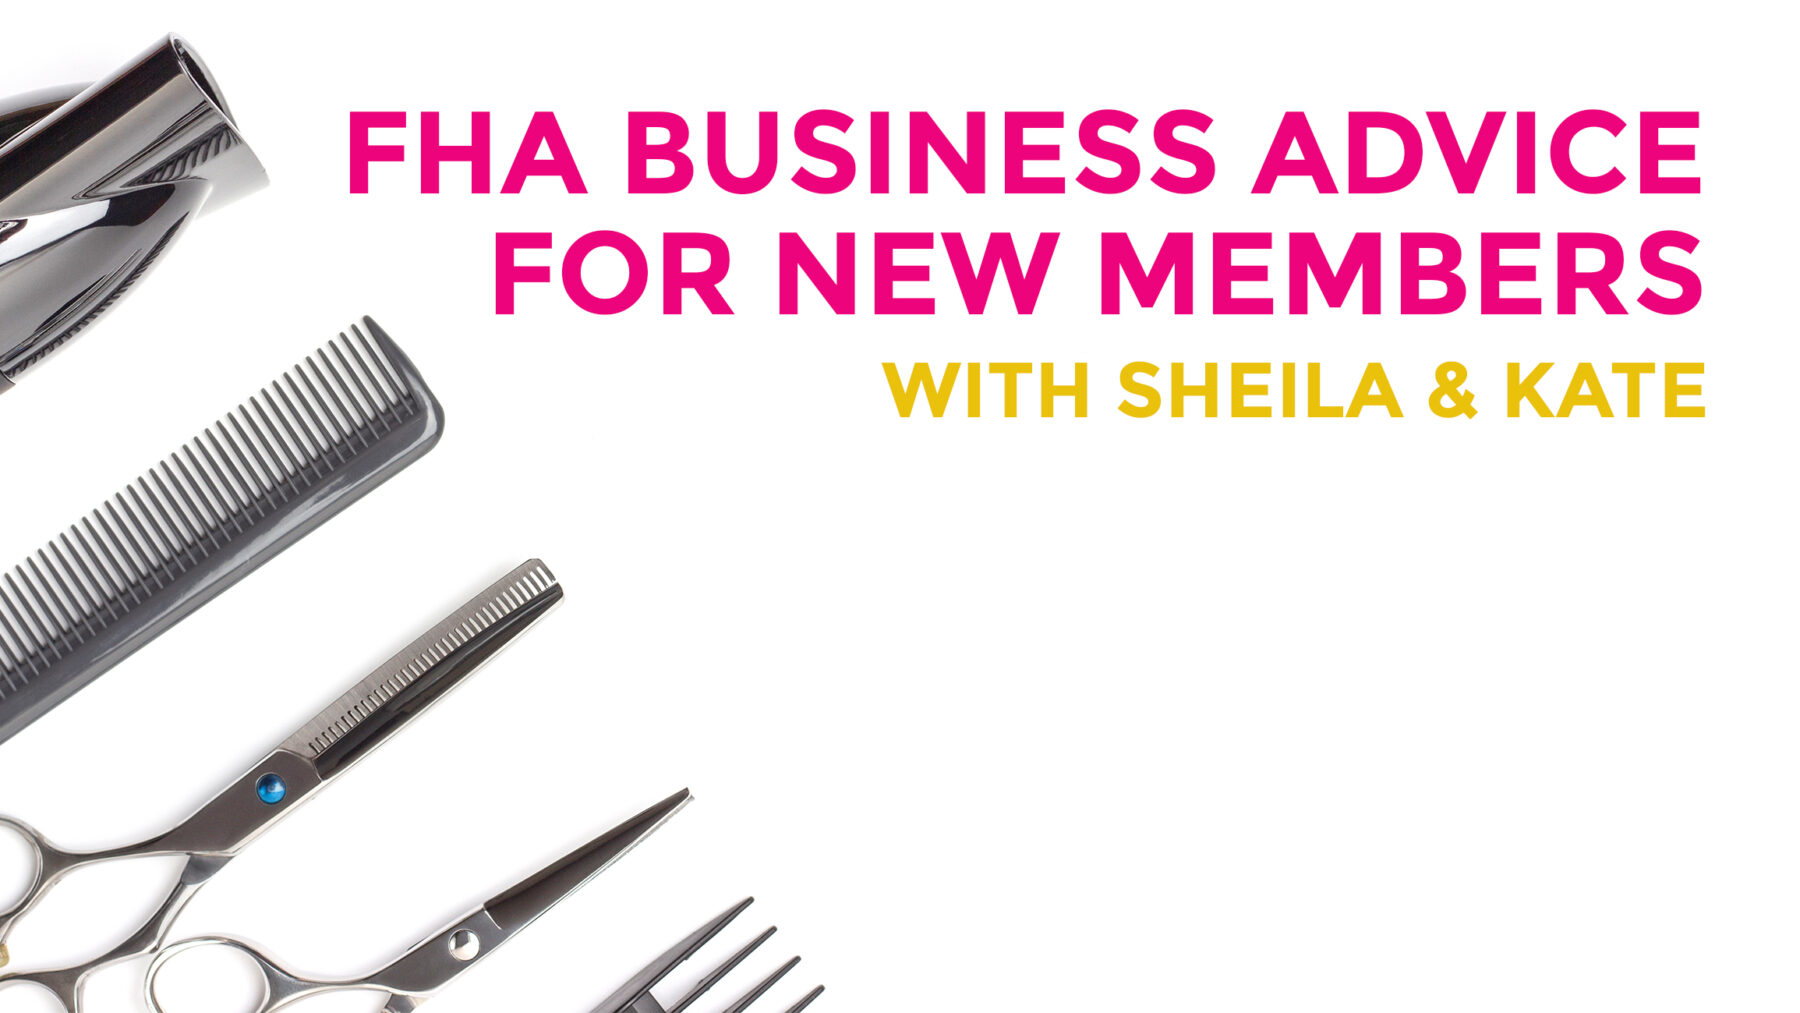 FHA Business Advice for New Members with Sheila Abrahams & Kate Lovelace